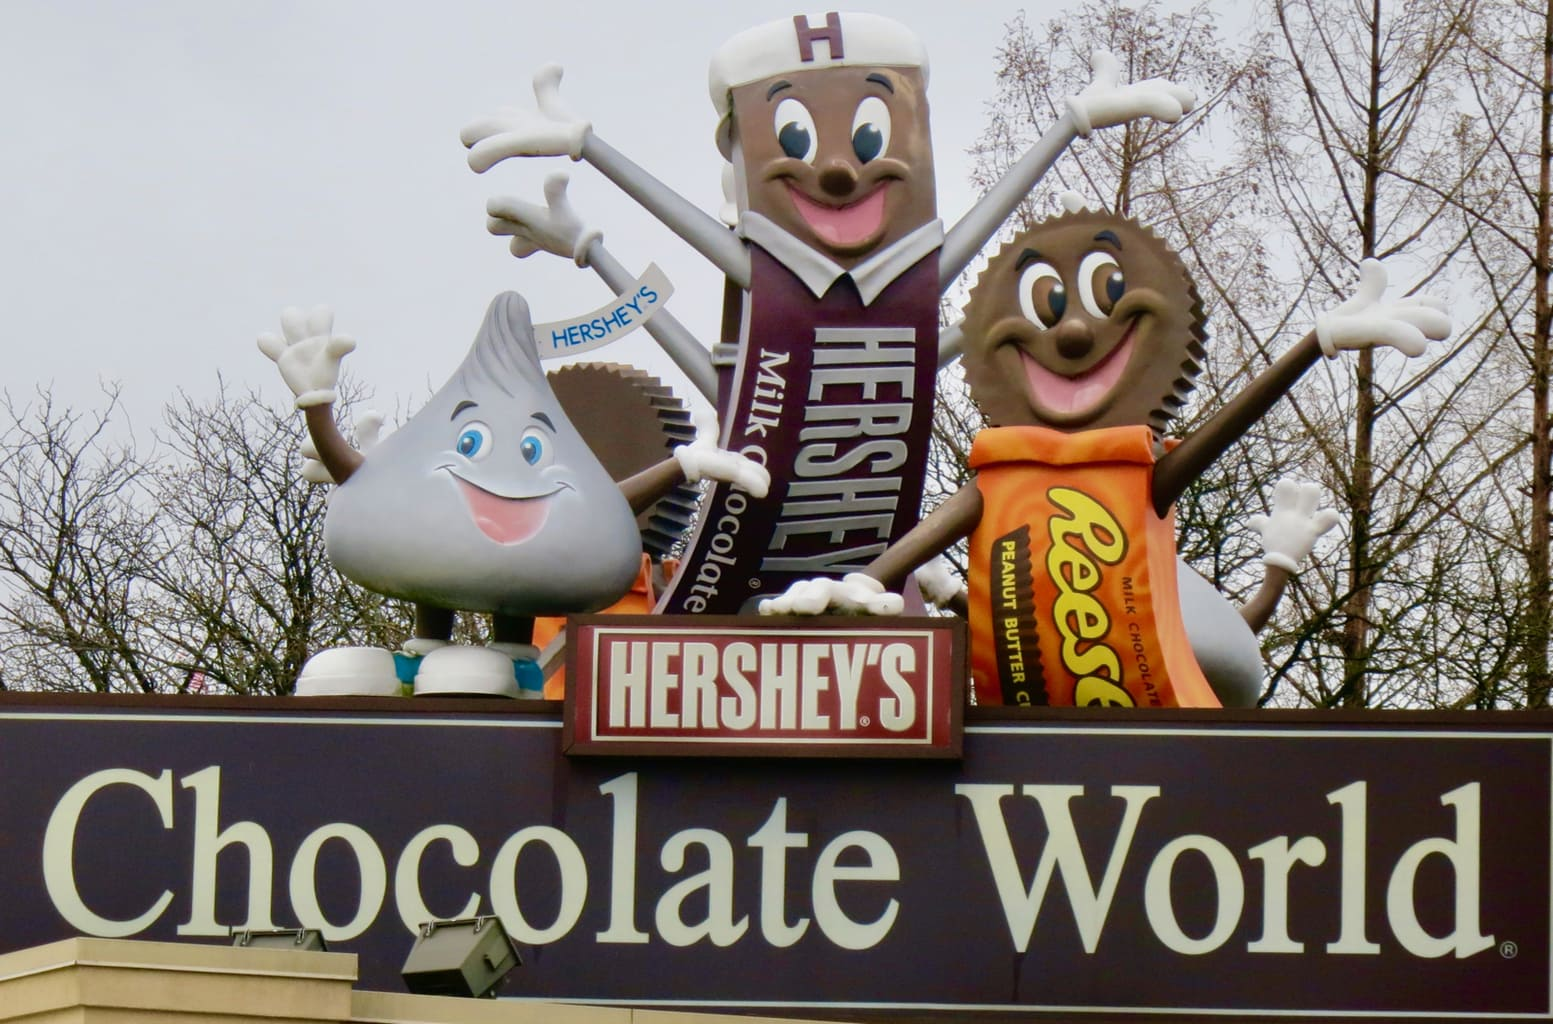 Chocolate World, Hershey PA